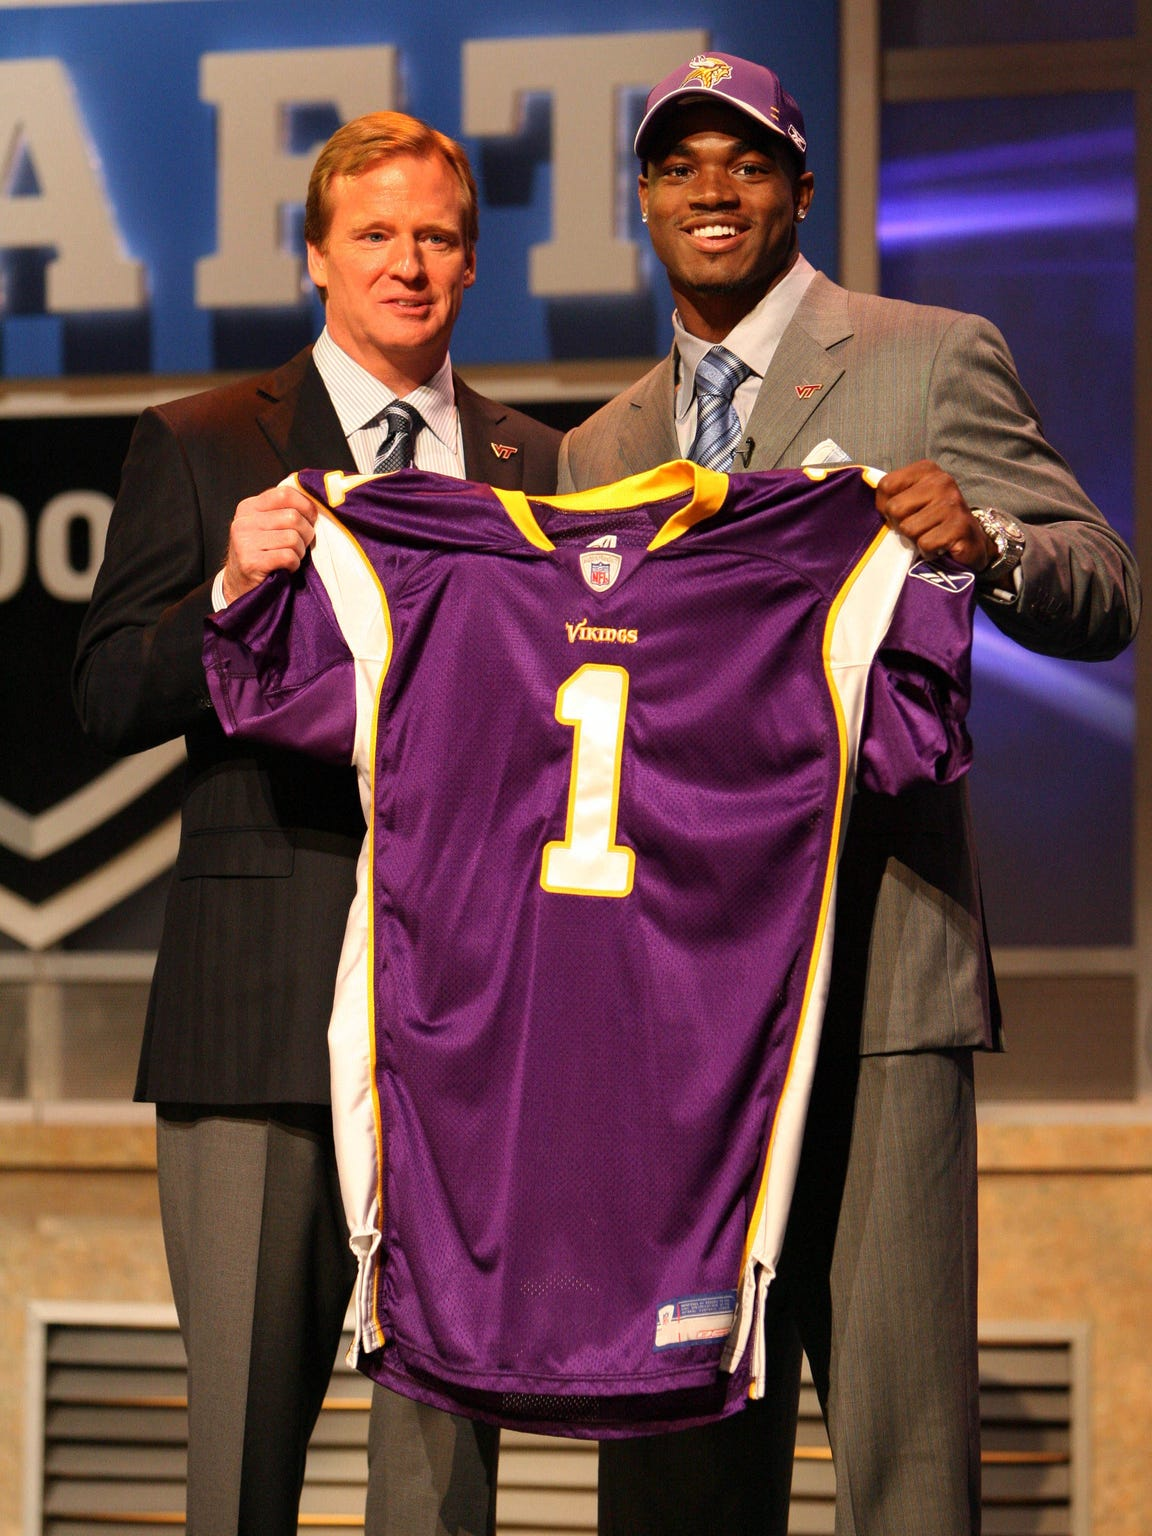 Commissioner Roger Goodell welcomed Adrian Peterson